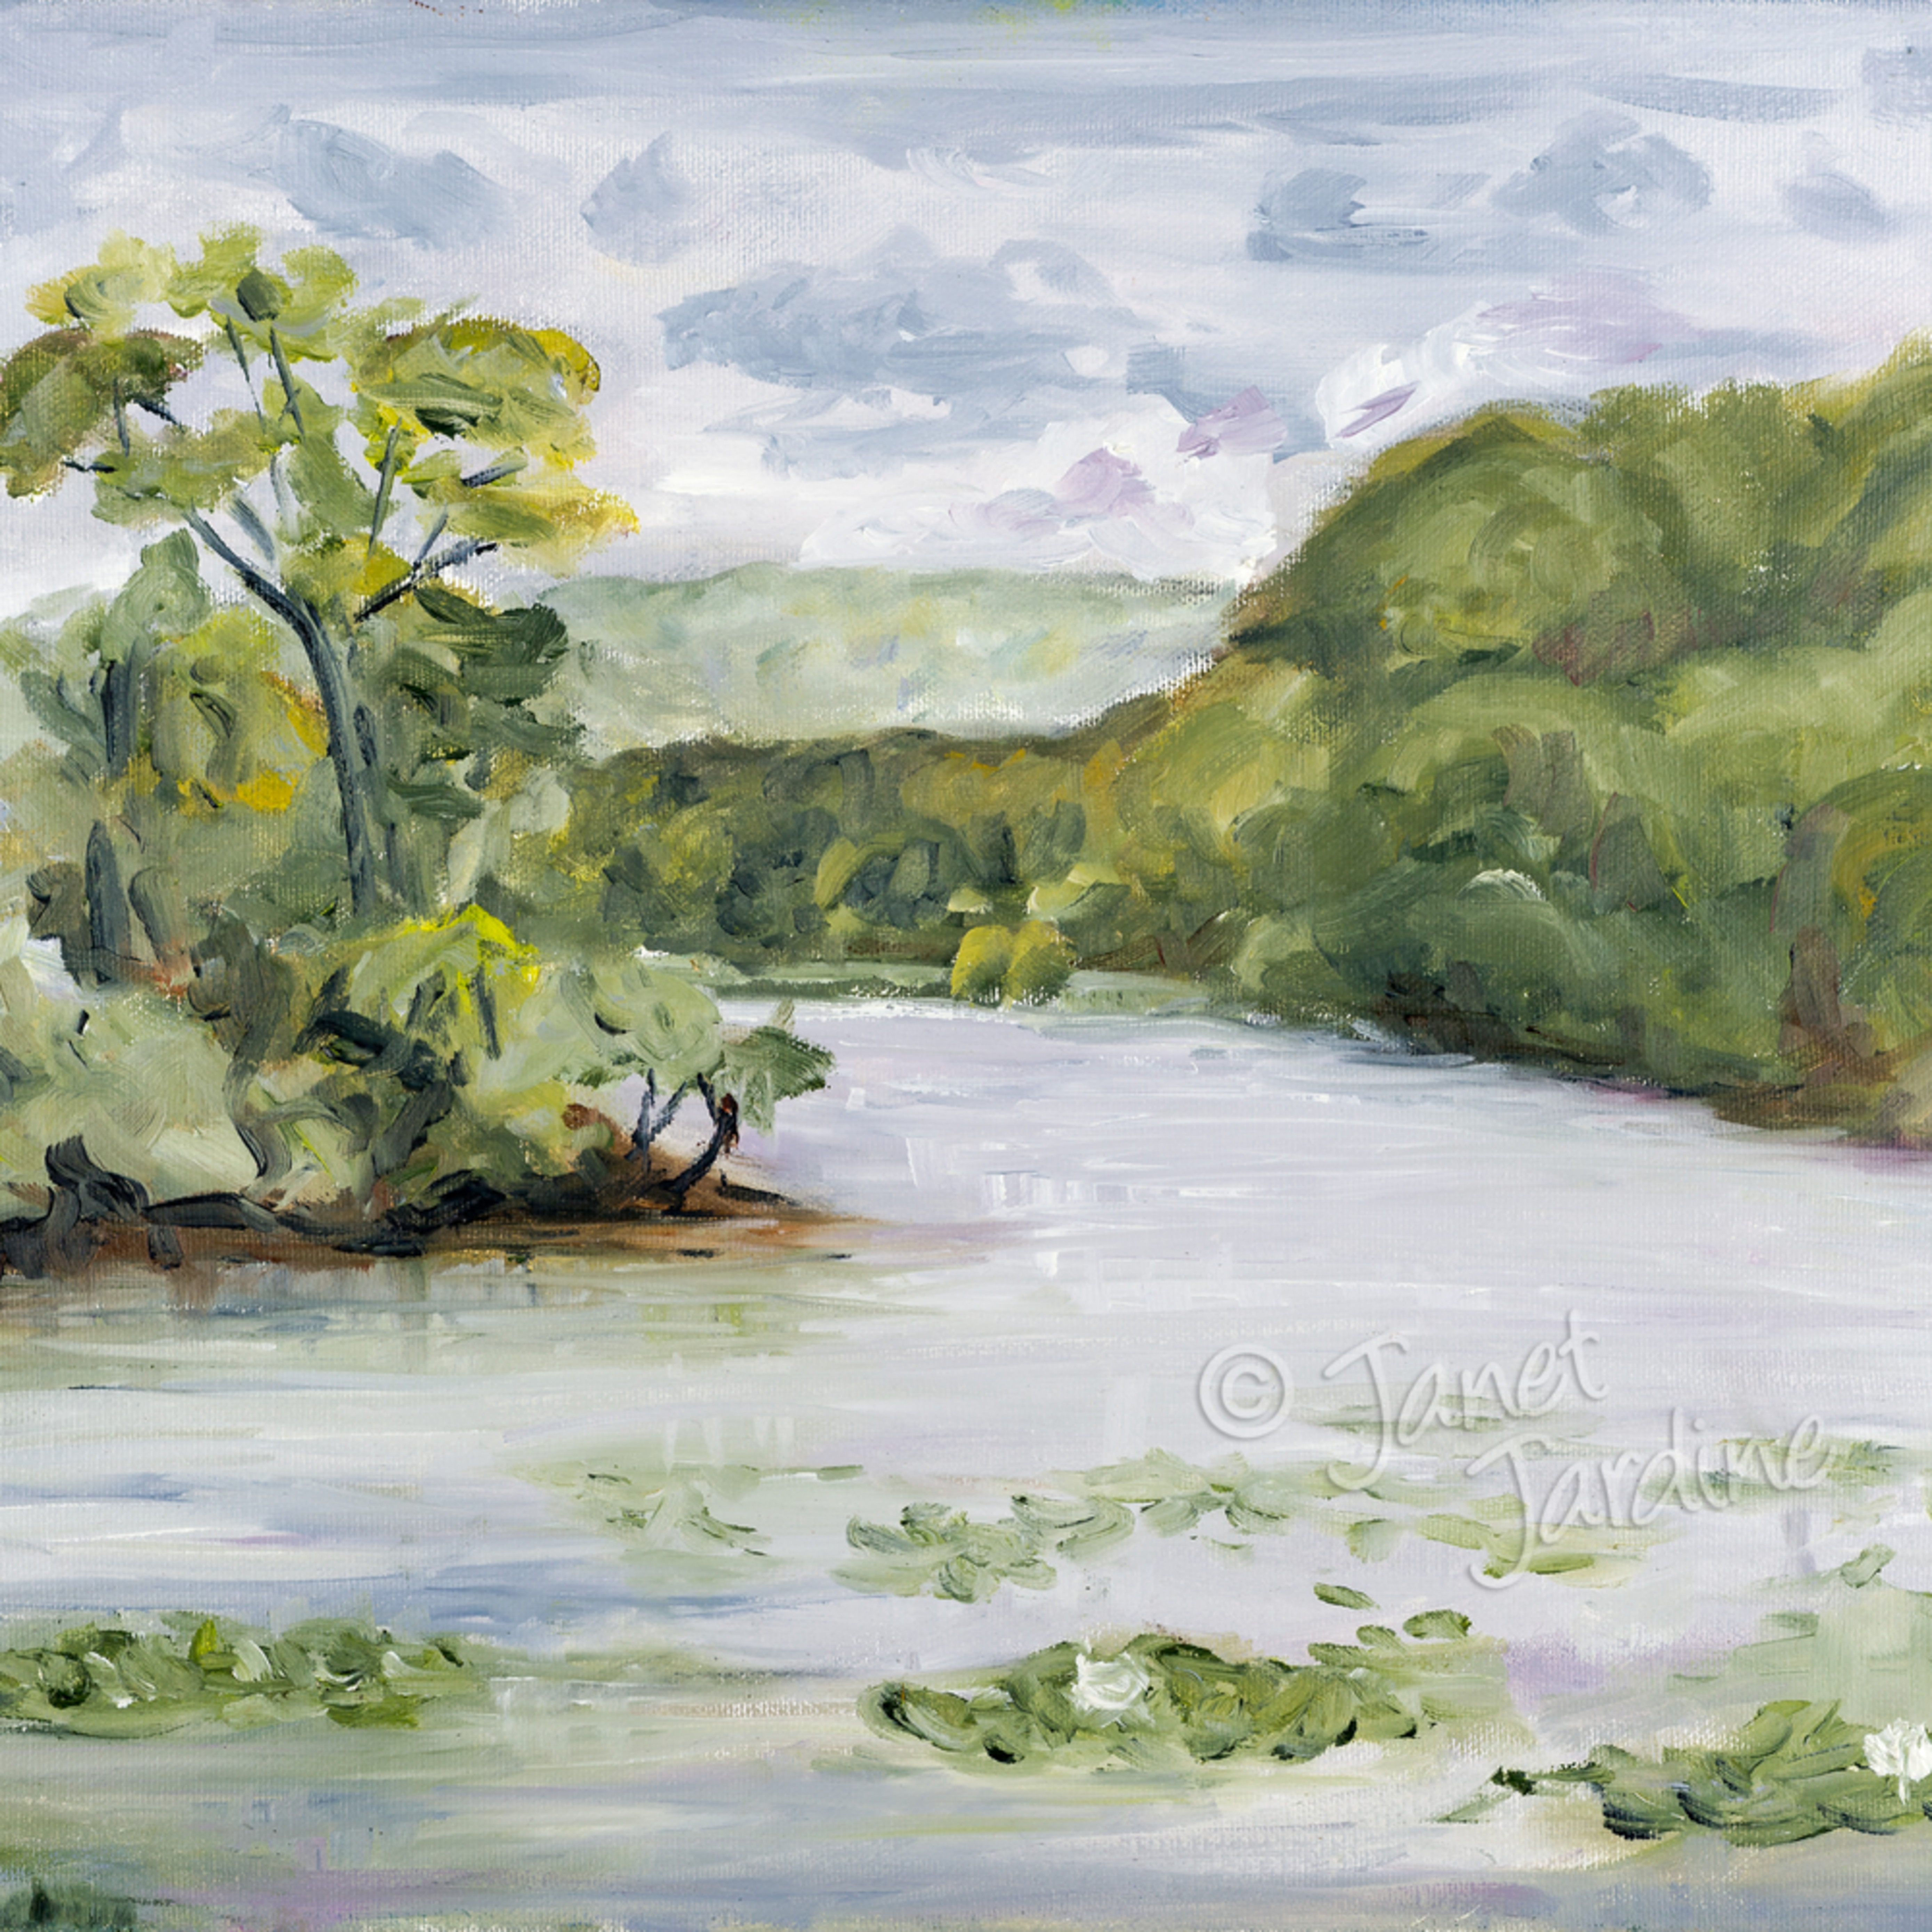 Cootes paradise on a hot humid day janet jardine painting lm554h